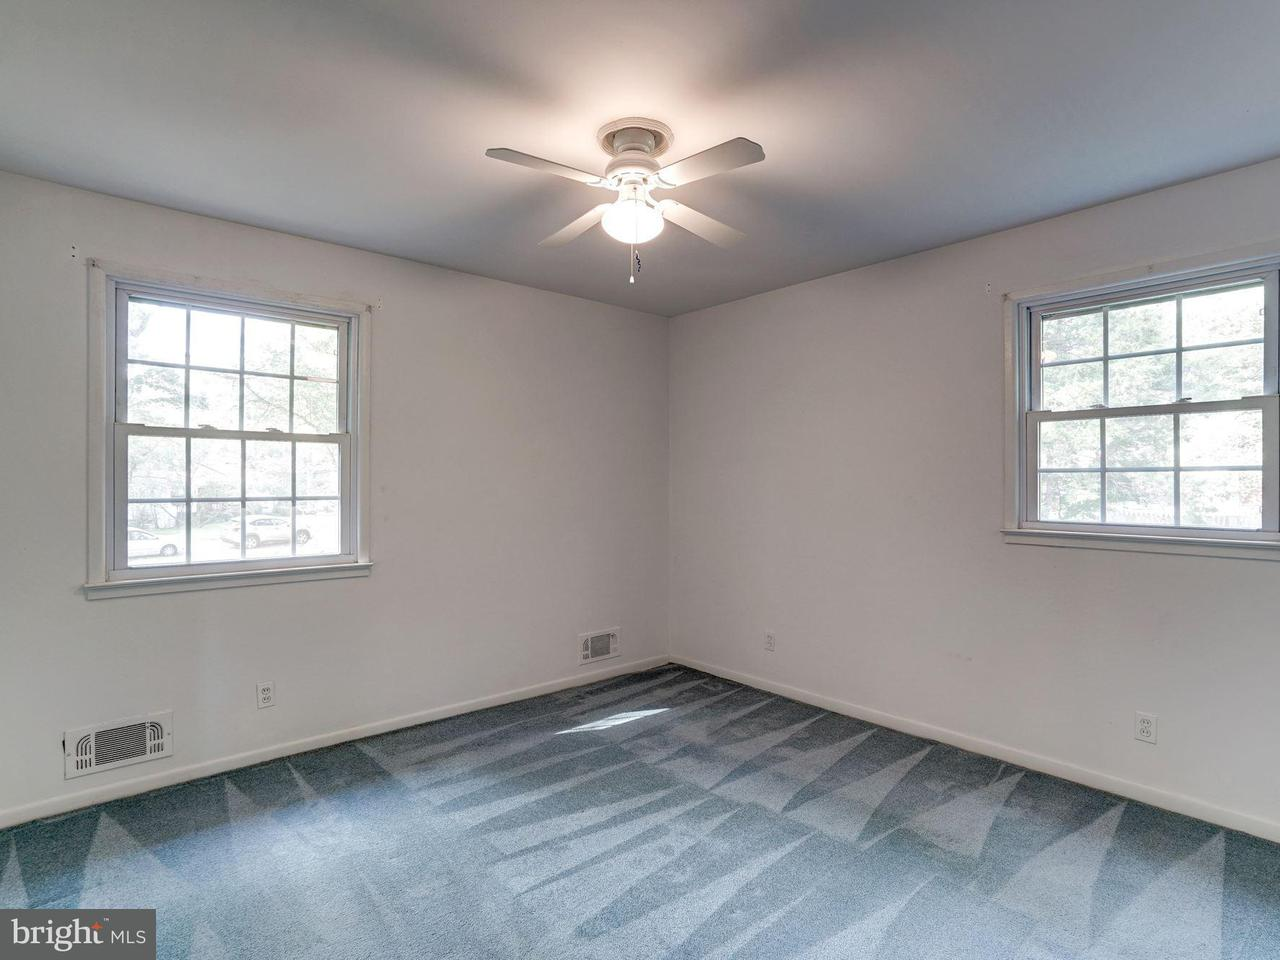 Additional photo for property listing at 10230 Elizabeth St  Great Falls, Virginia 22066 United States